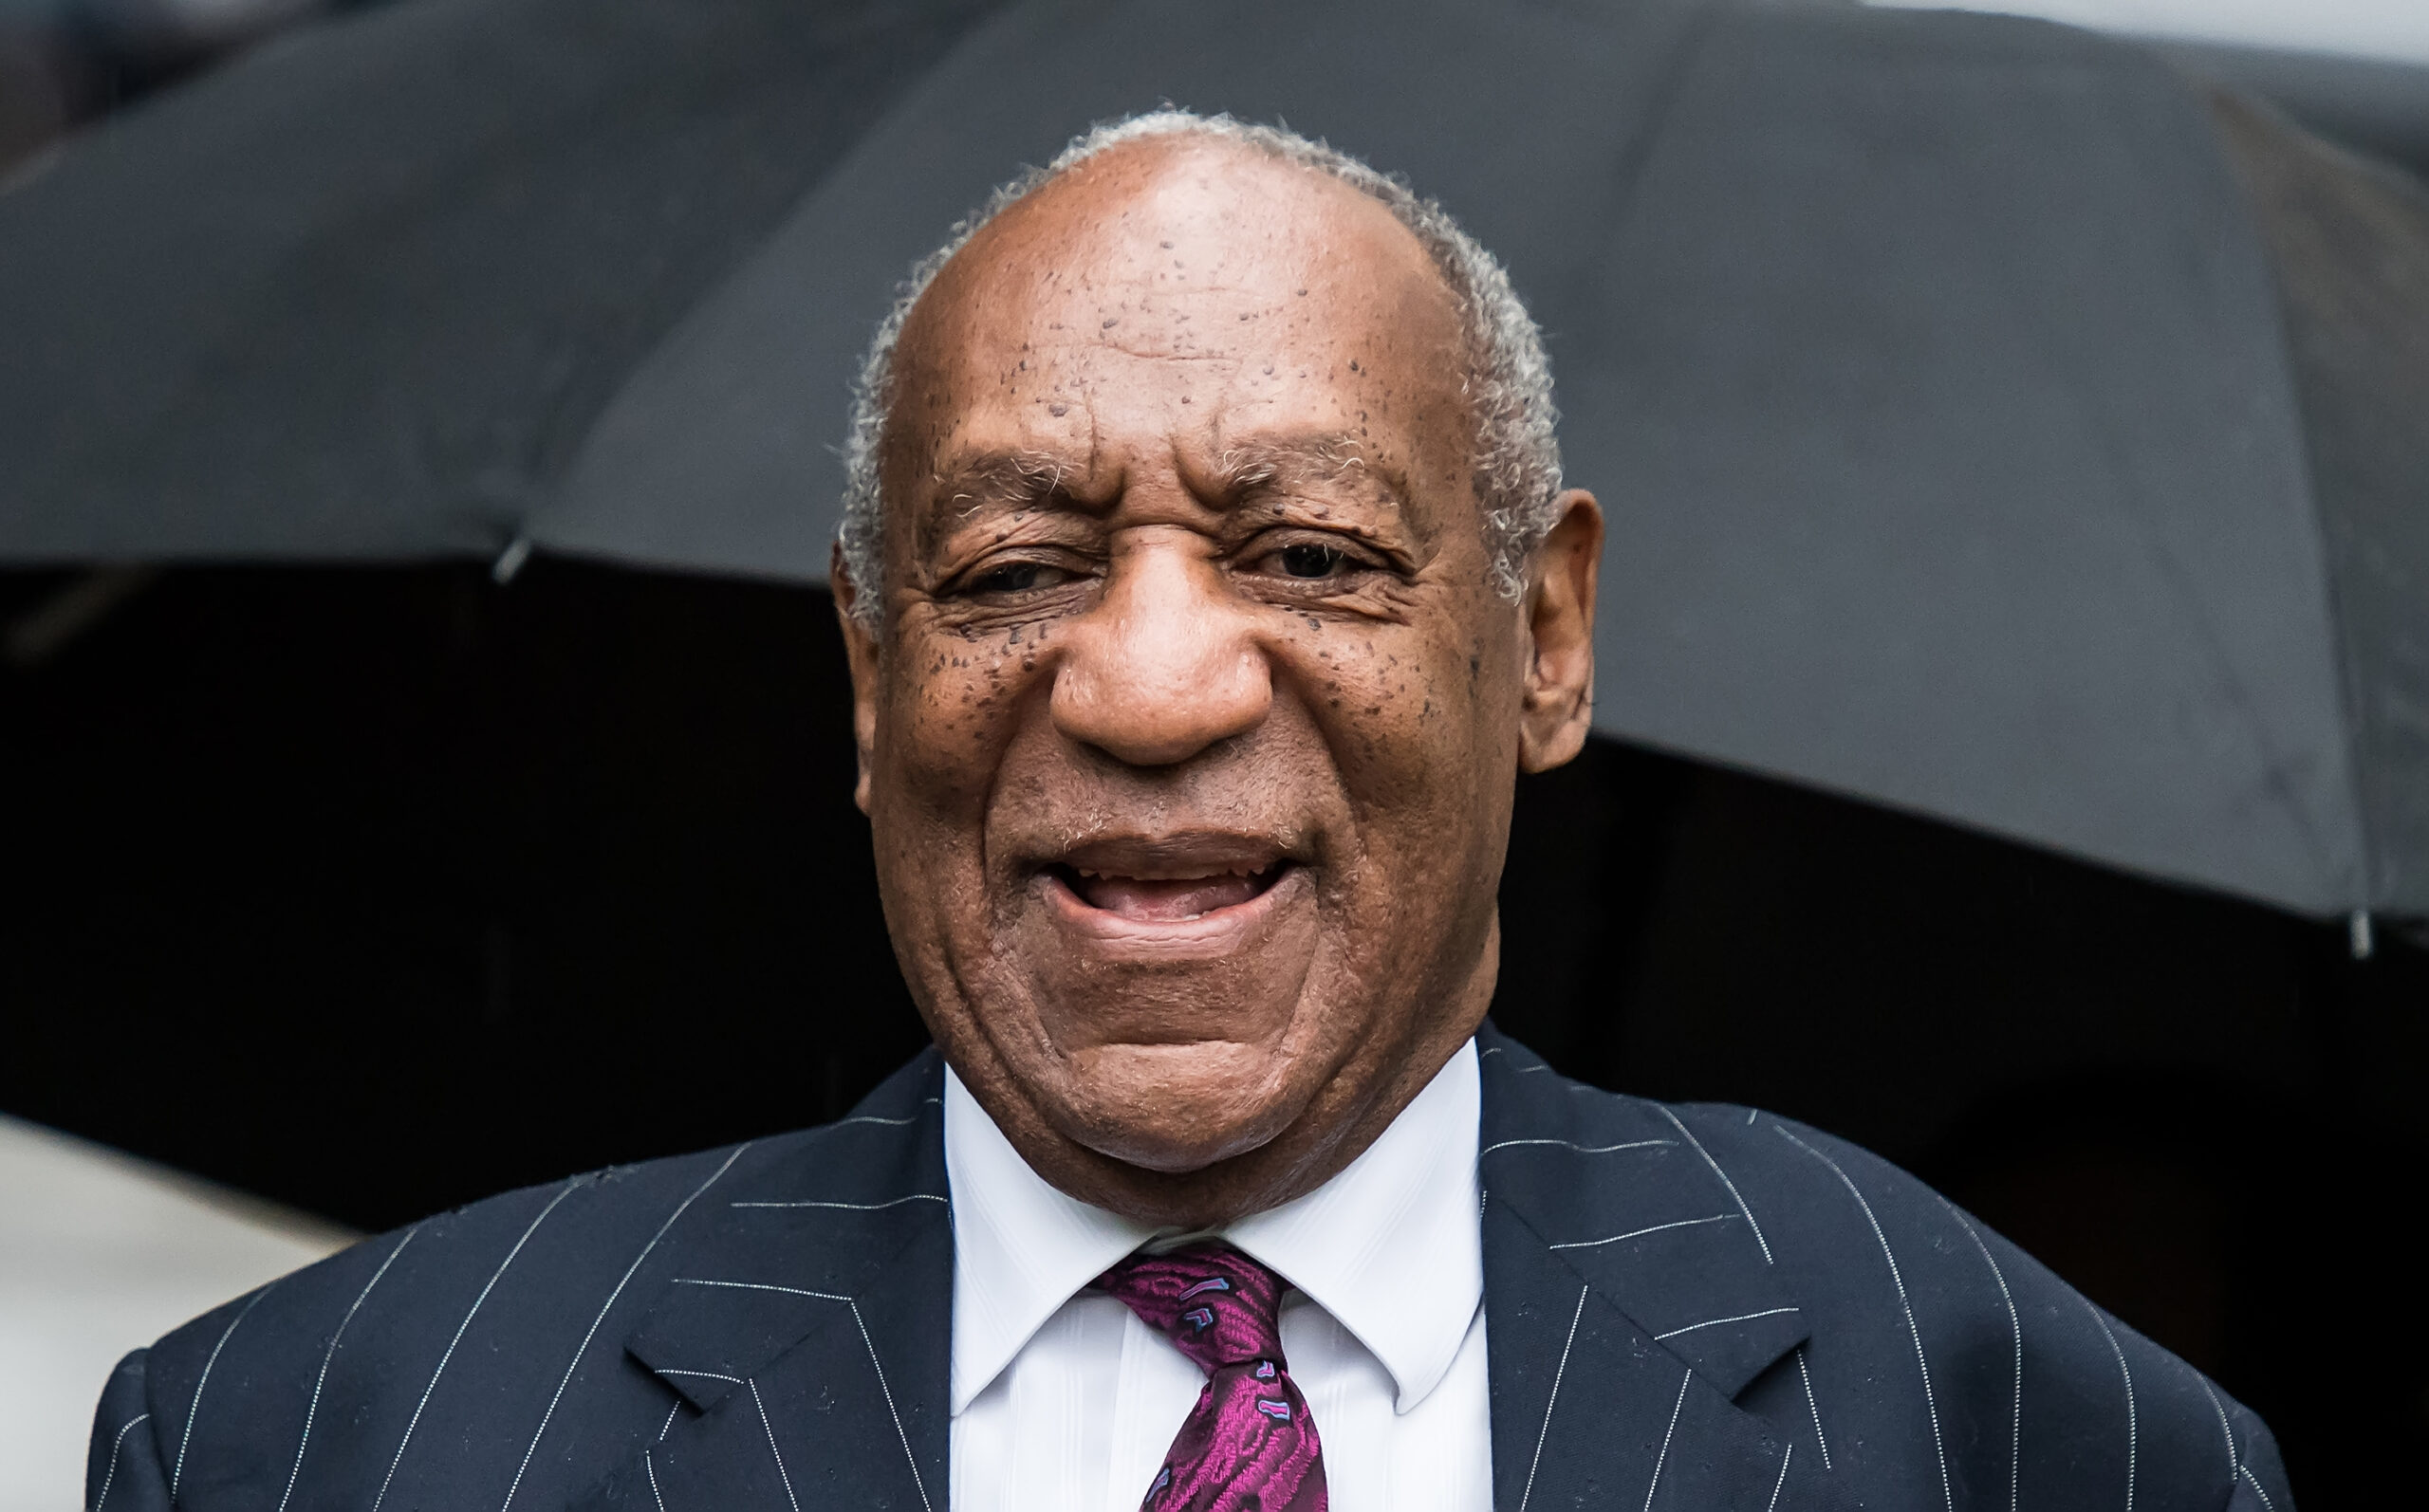 Bill Cosby Biography, Facts & Life Story Updated 2021